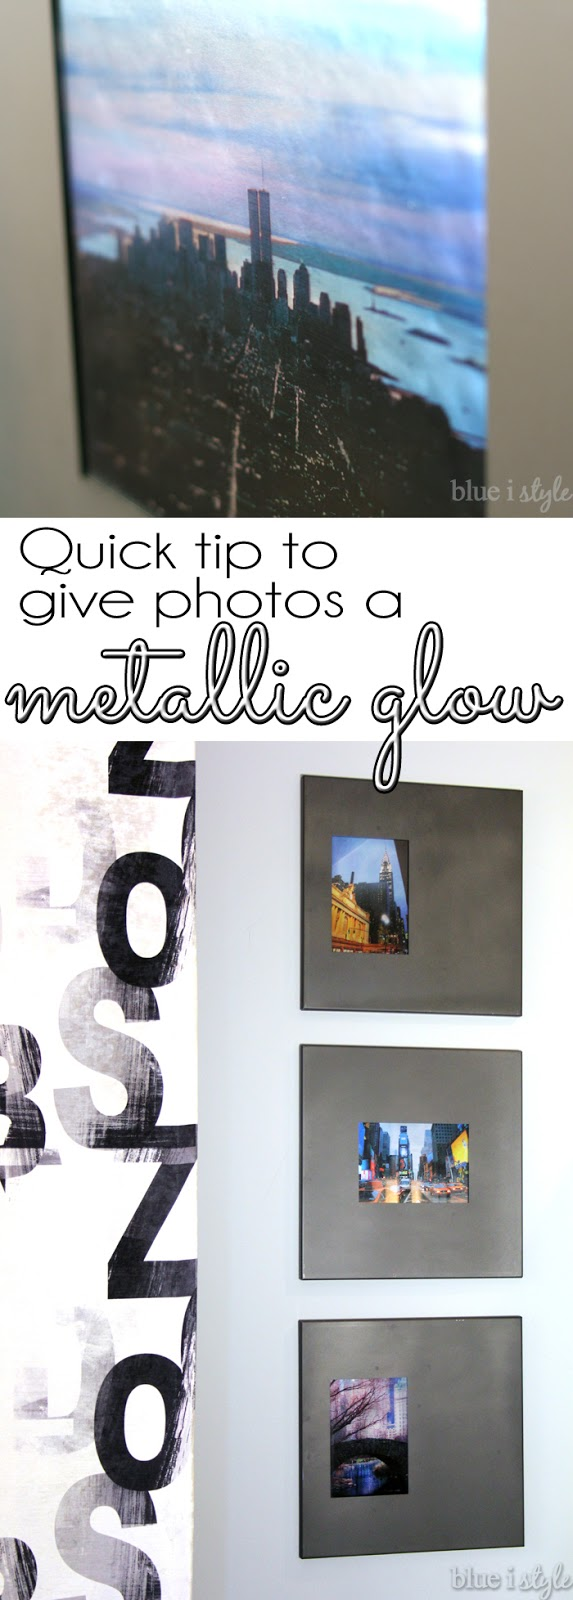 Give Photos a Metallic Glow